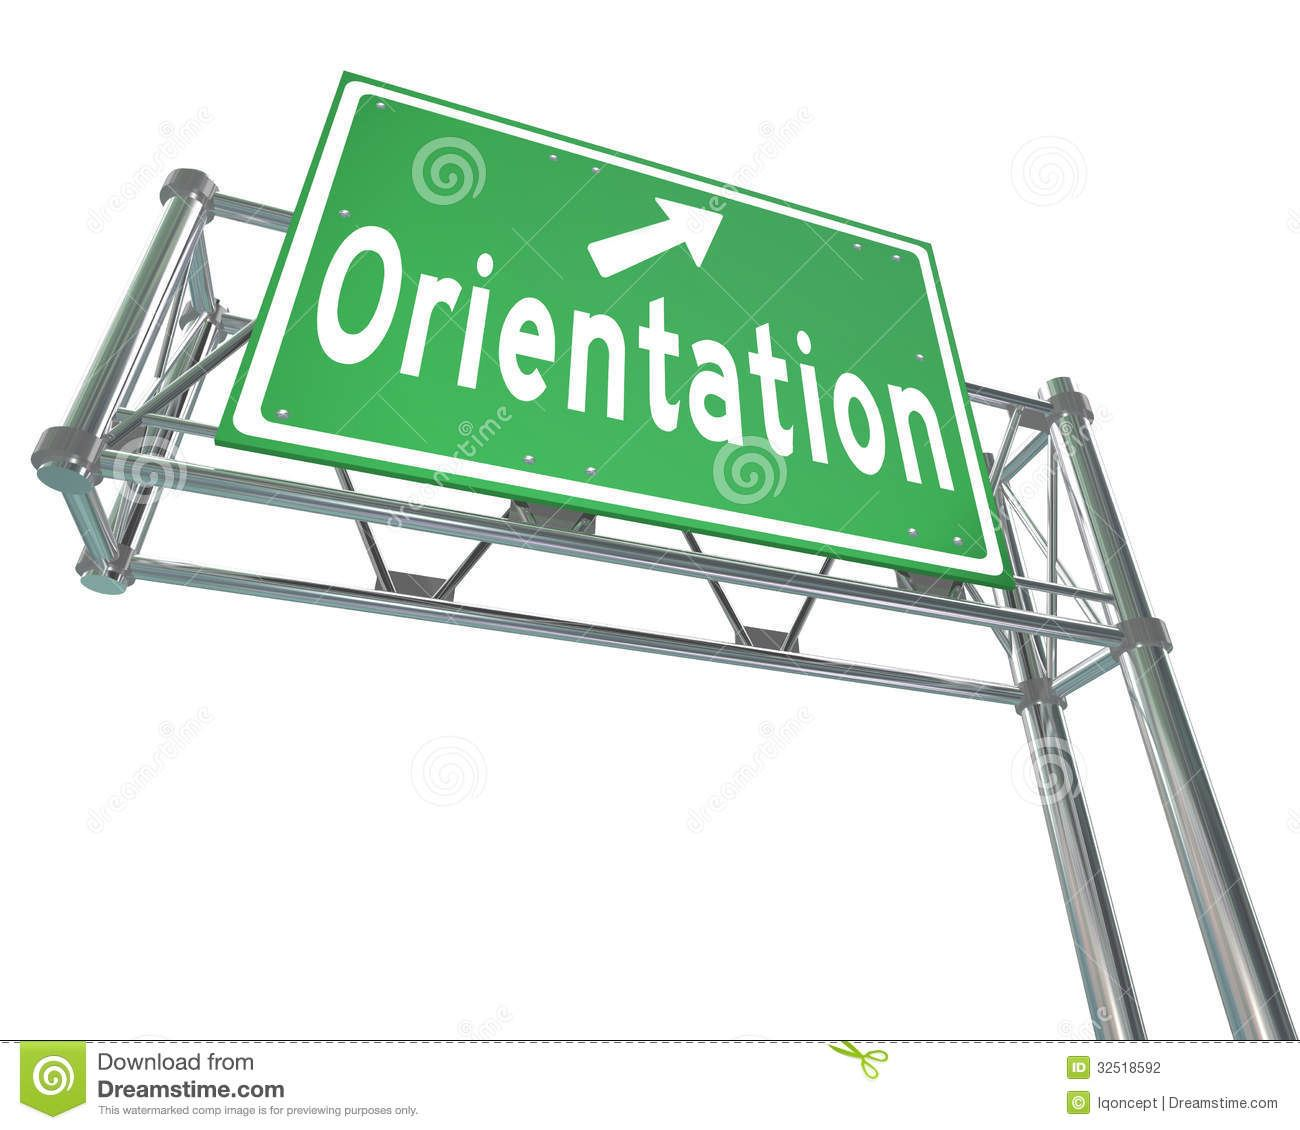 Thornton High School 2020-2021 Orientation for New and Returning Students